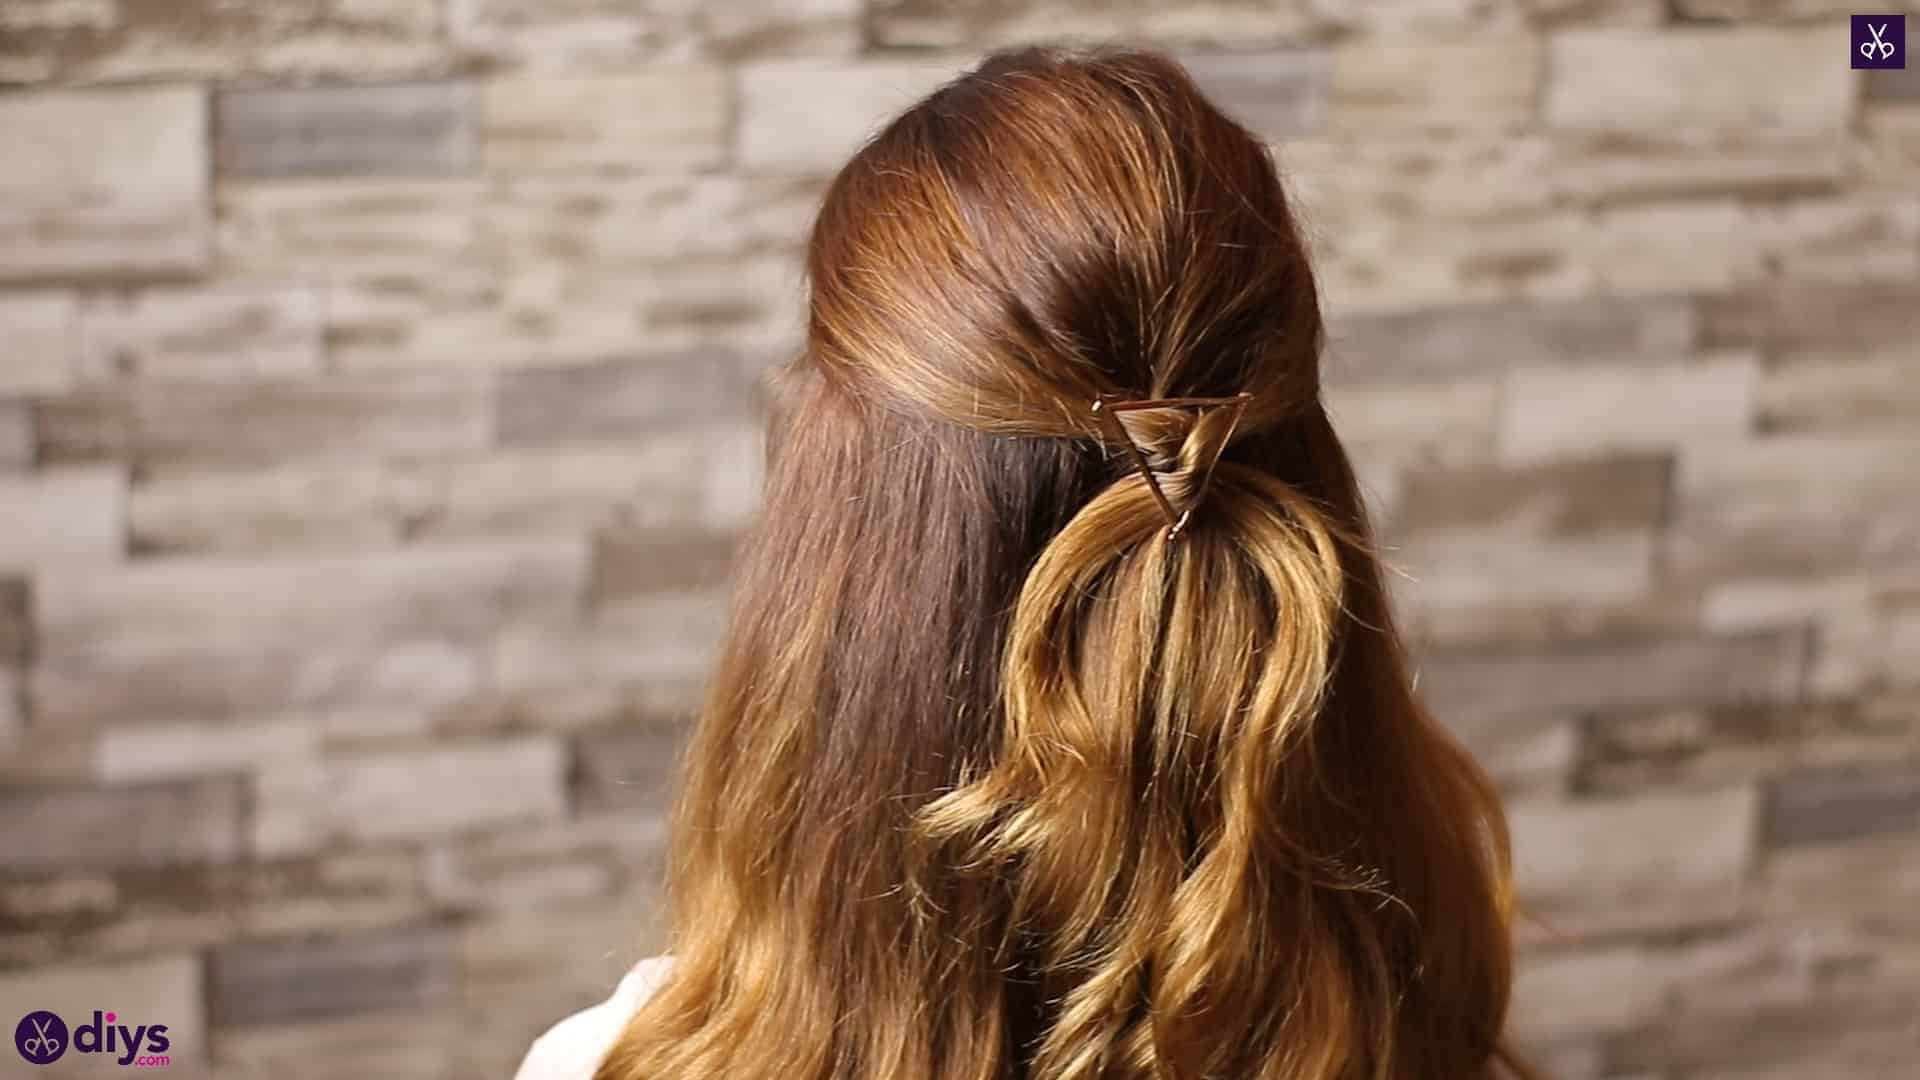 Updo hairstyle for wavy hair 2